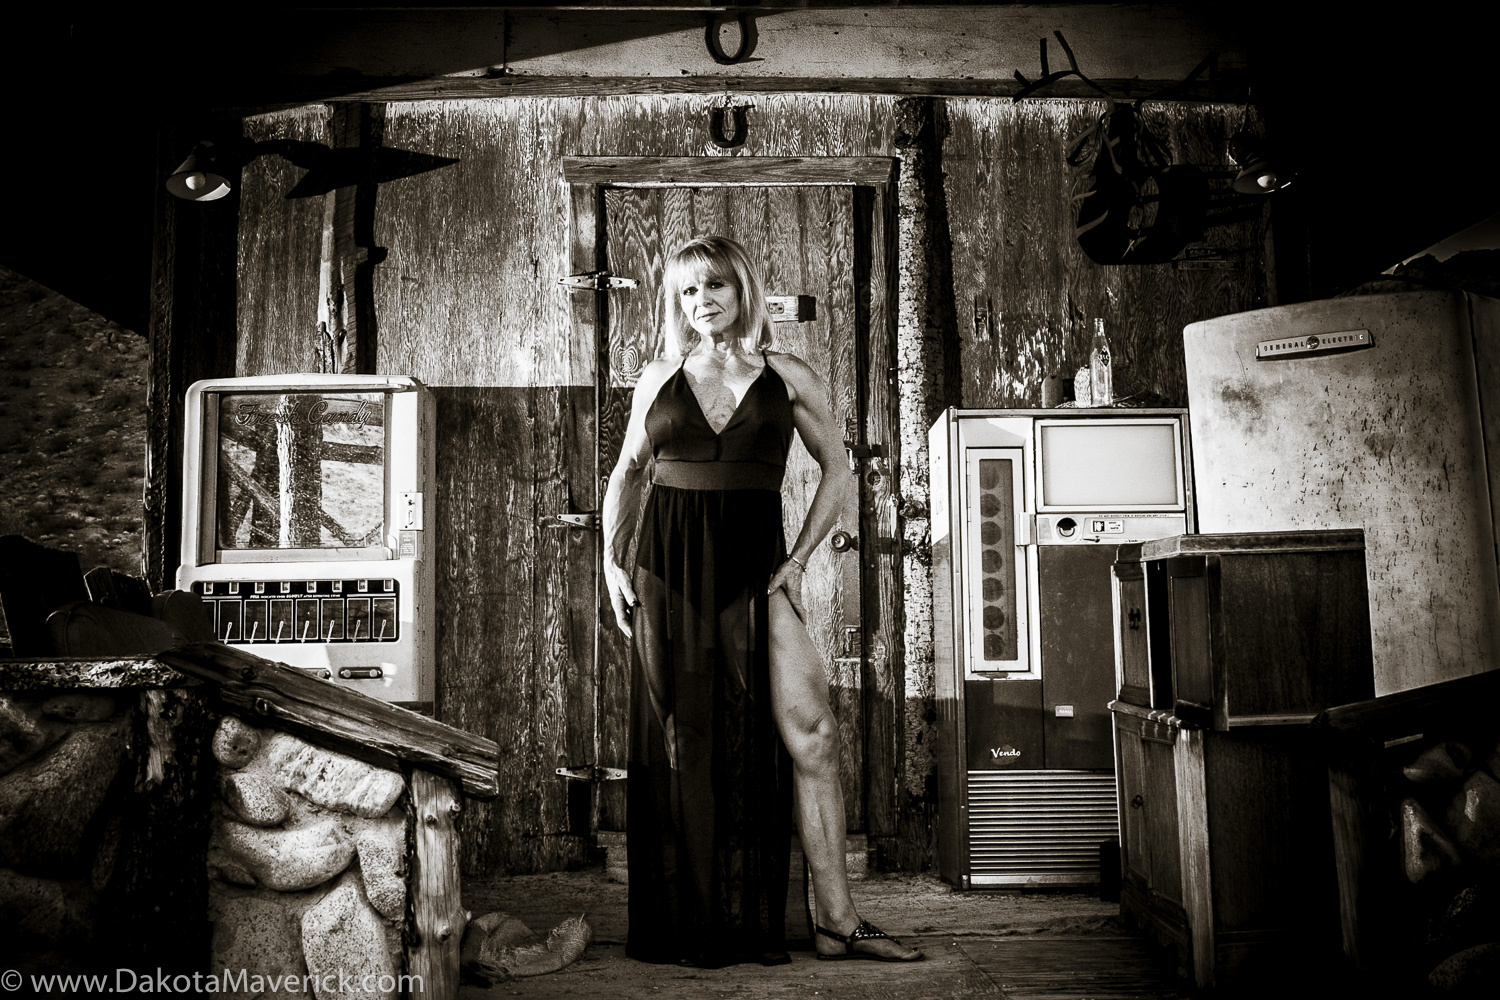 Vancouver Fitness Photographer - Nelson Ghost Town, Nevada - Fashion Fitness Shoot (36 of 40).jpg